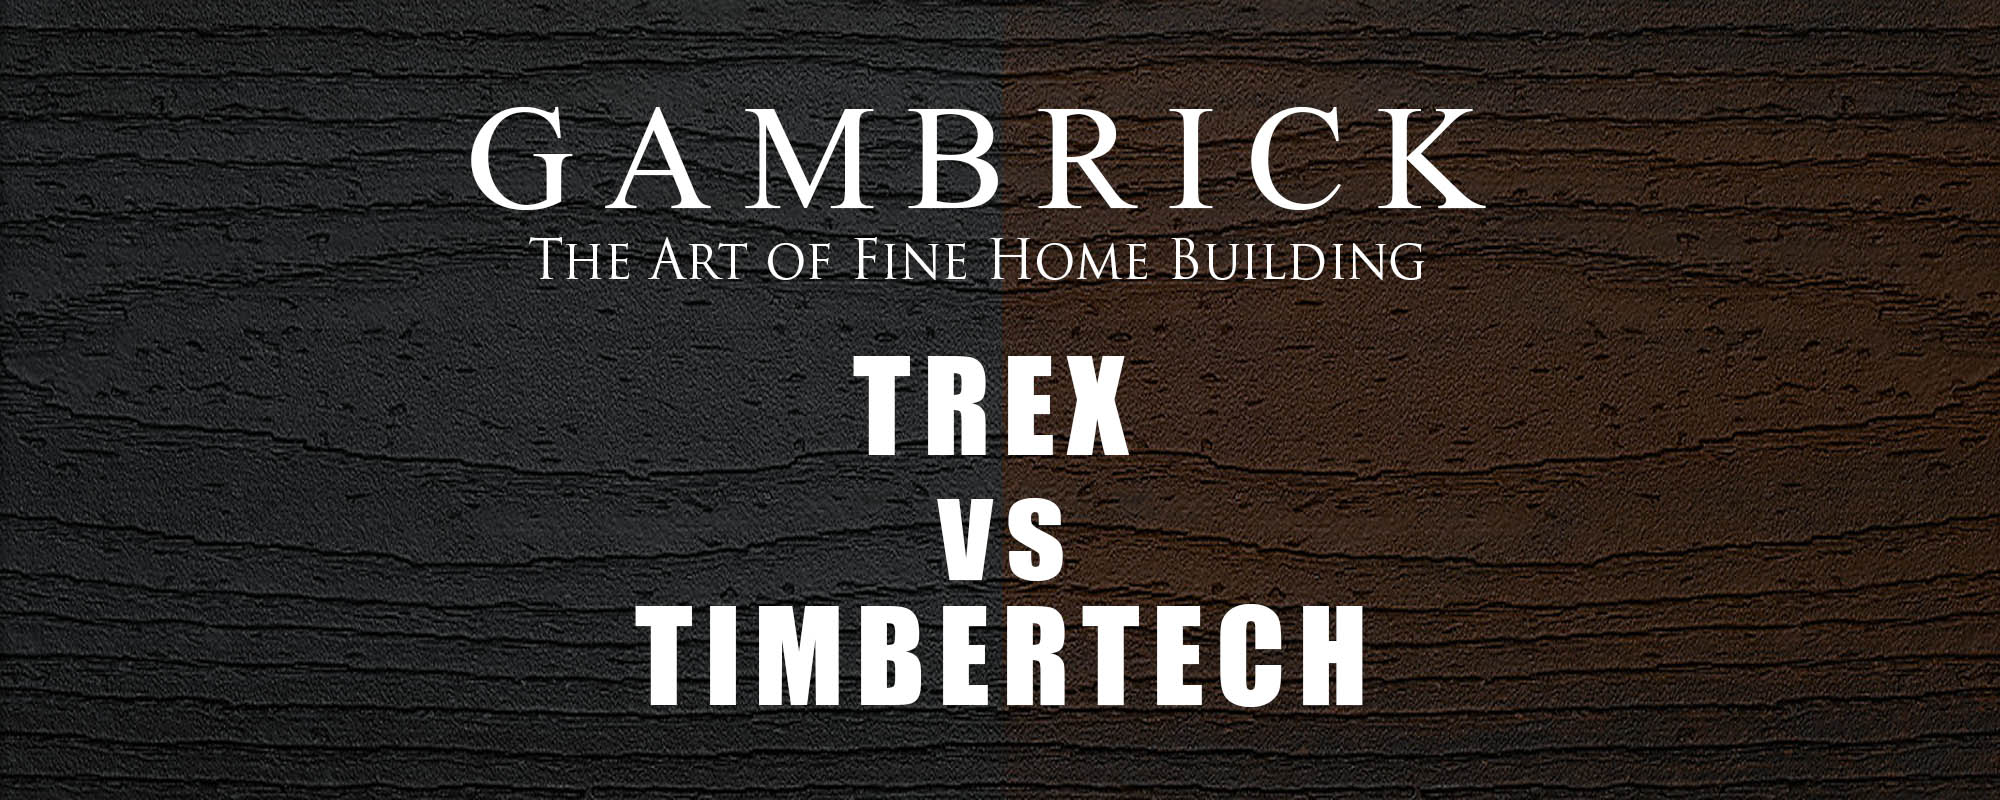 Trex vs Timbertech title banner pic